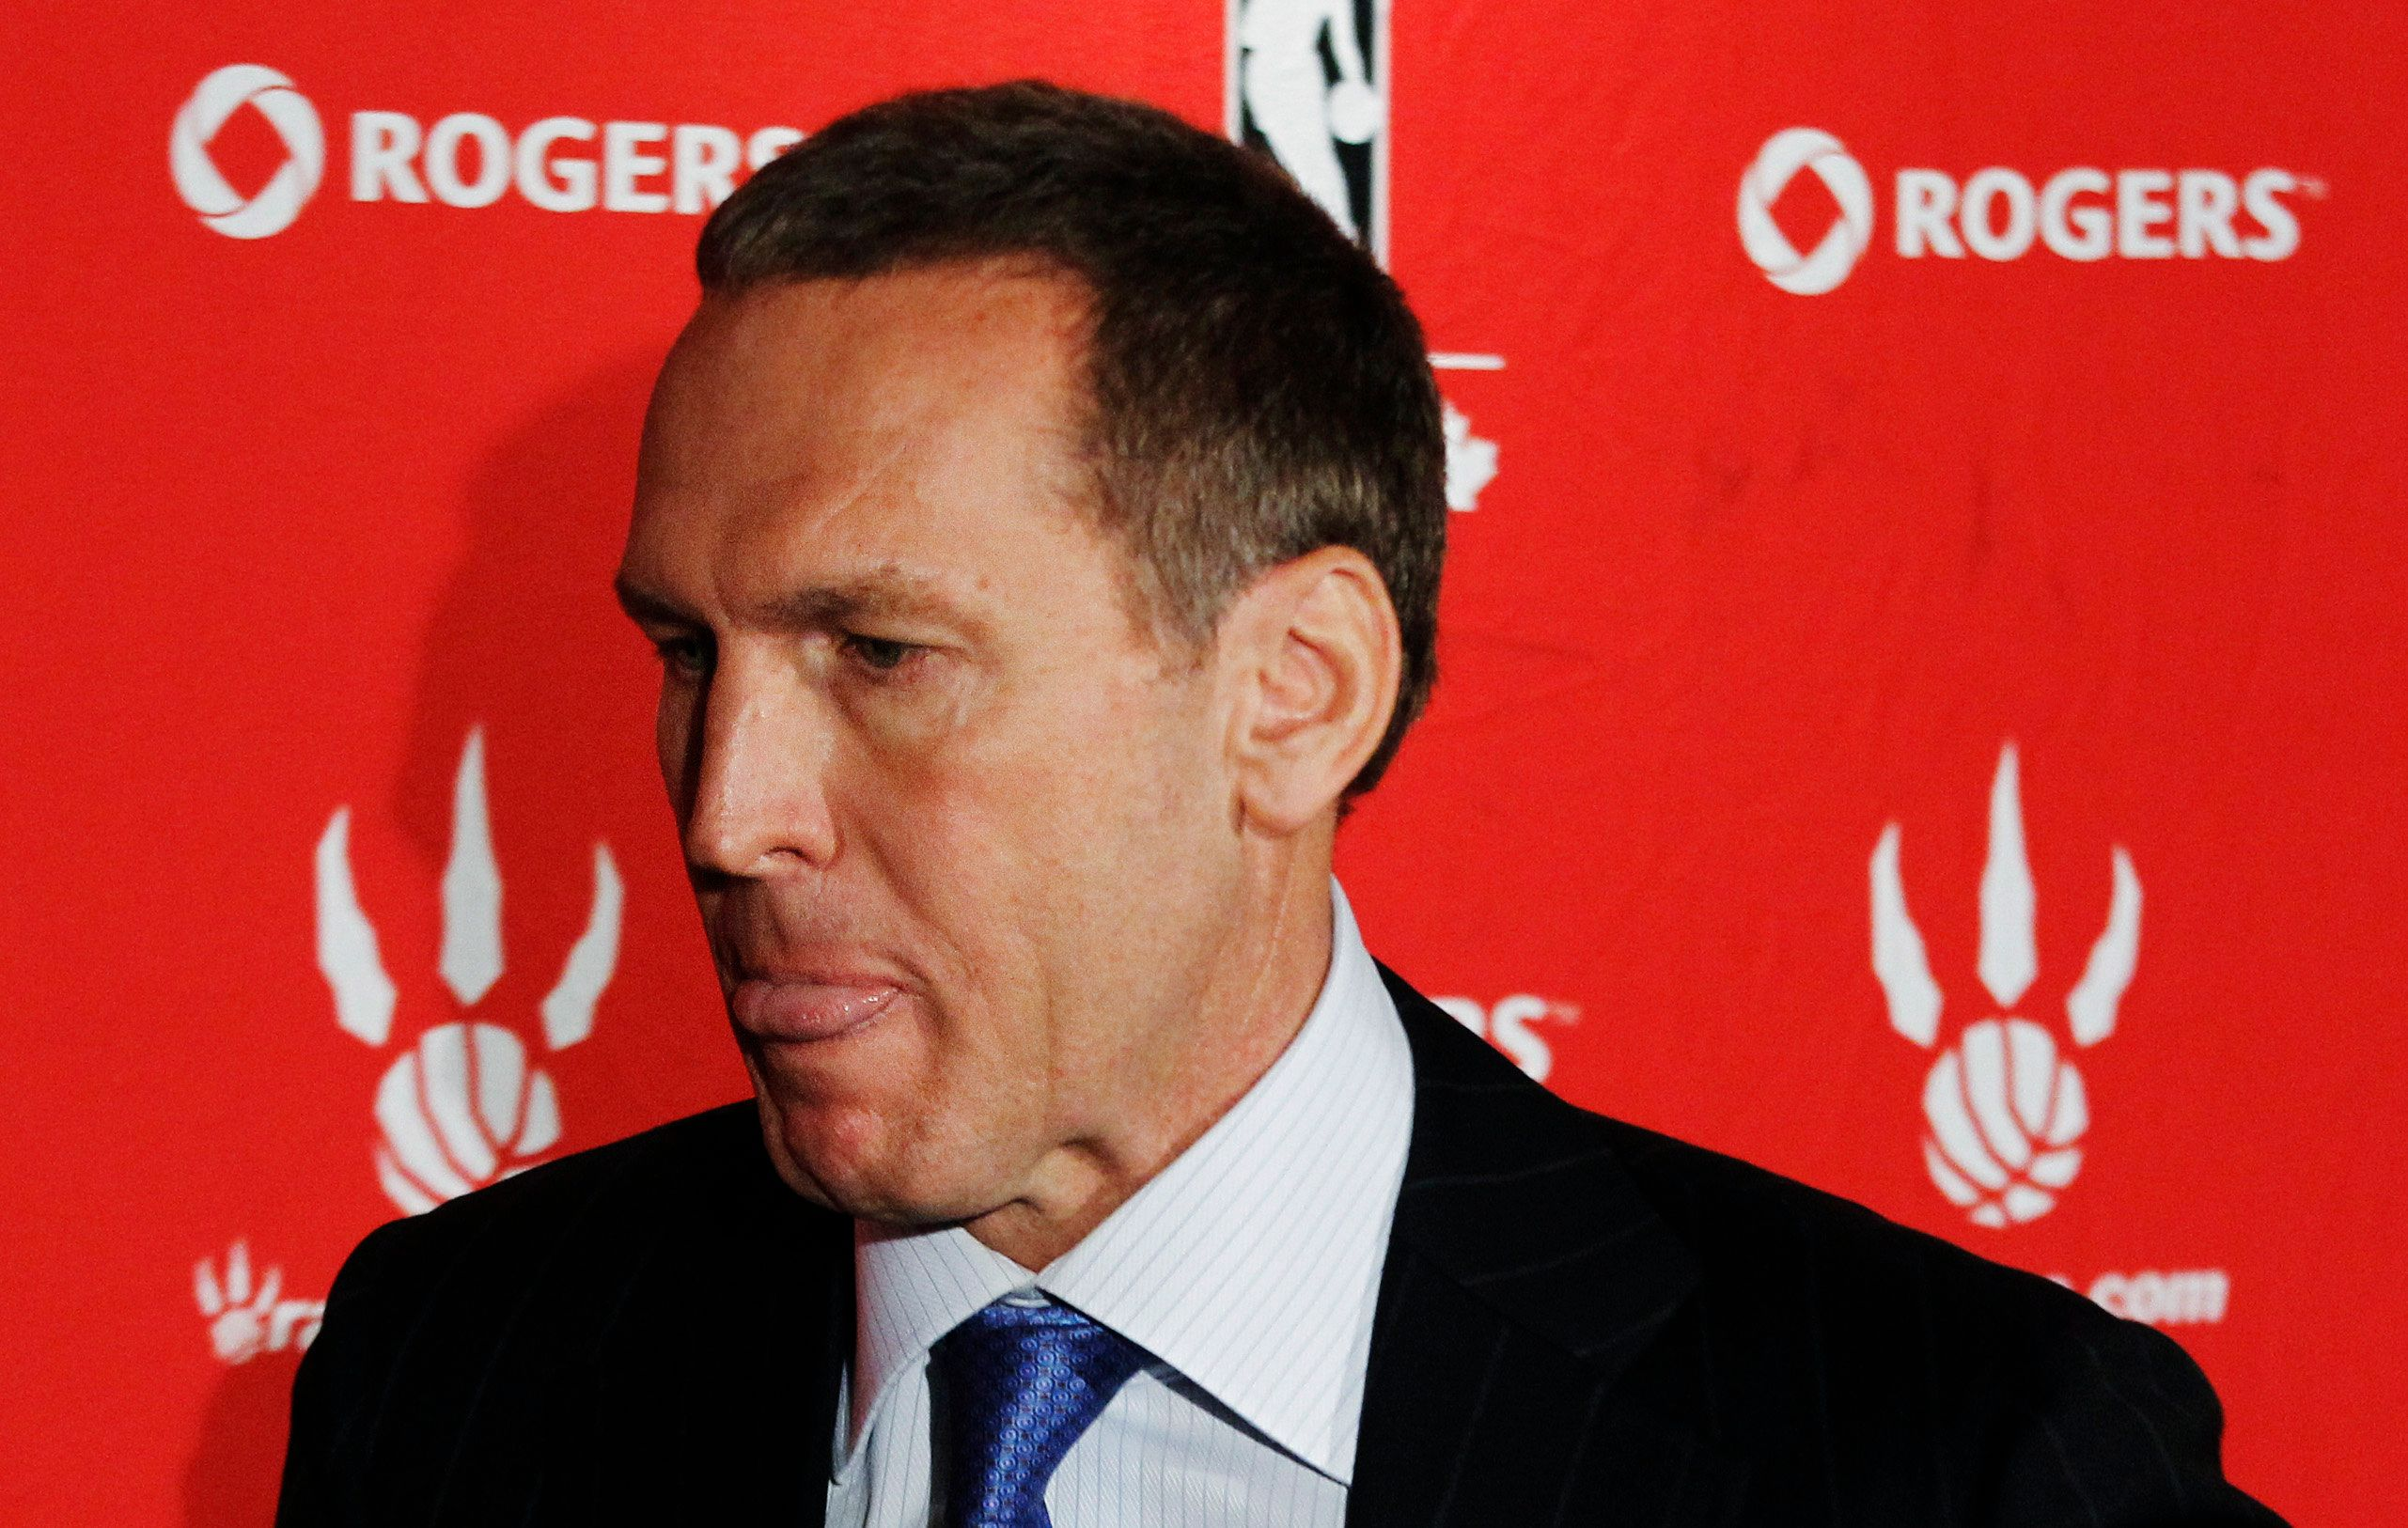 Bryan Colangelo, general manager of NBA basketball team Toronto Raptors, leaves after a news conference discussing their season's results, in Toronto April 27, 2012.     REUTERS/Mark Blinch (CANADA - Tags: SPORT BASKETBALL HEADSHOT)